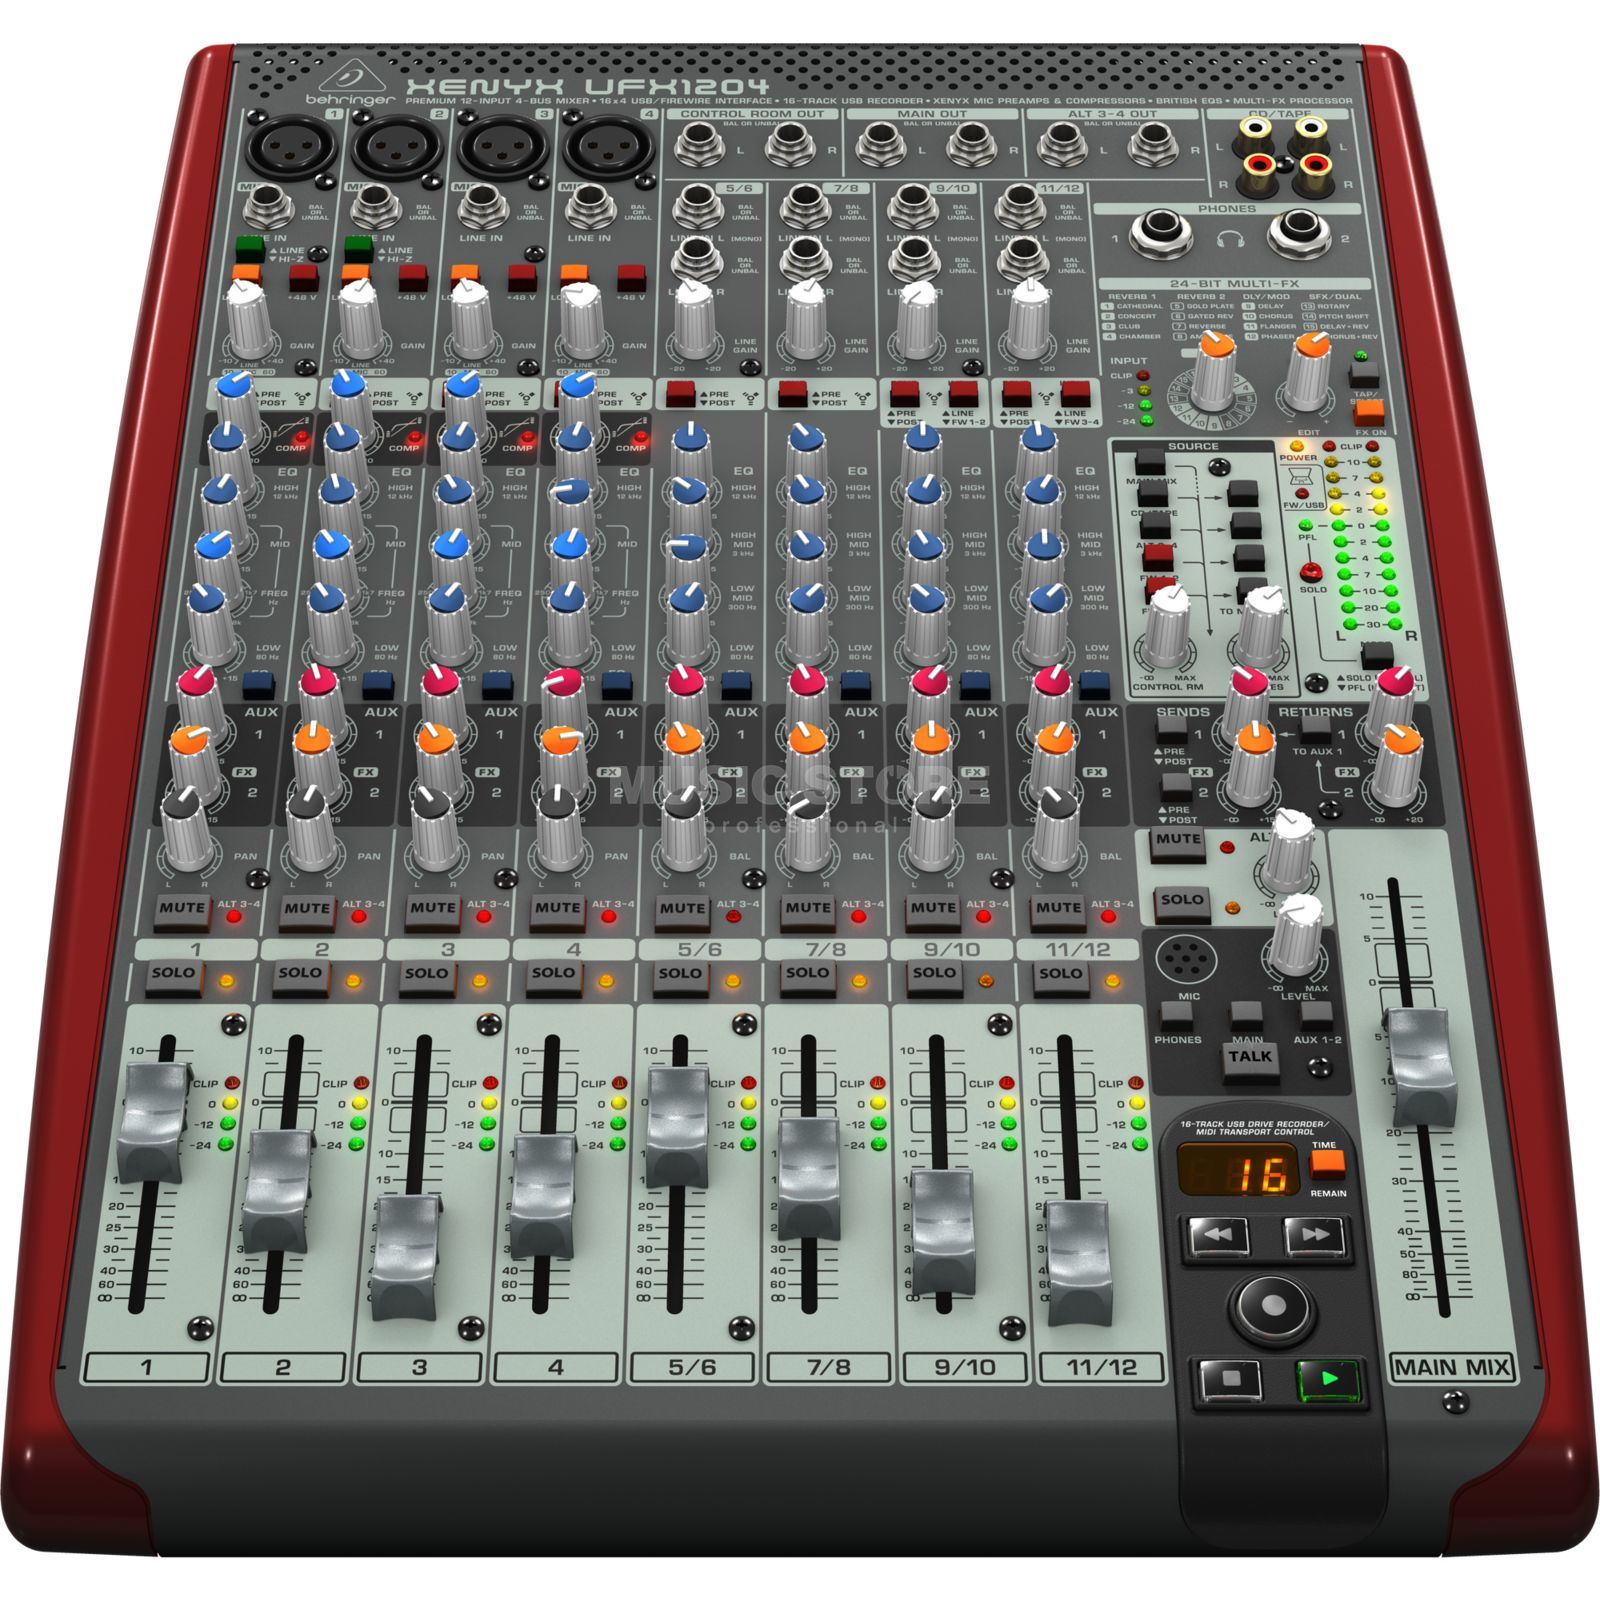 Behringer ufx1204 xenyx recording mischpult mit usb for Table de mixage xpress 6 keywood